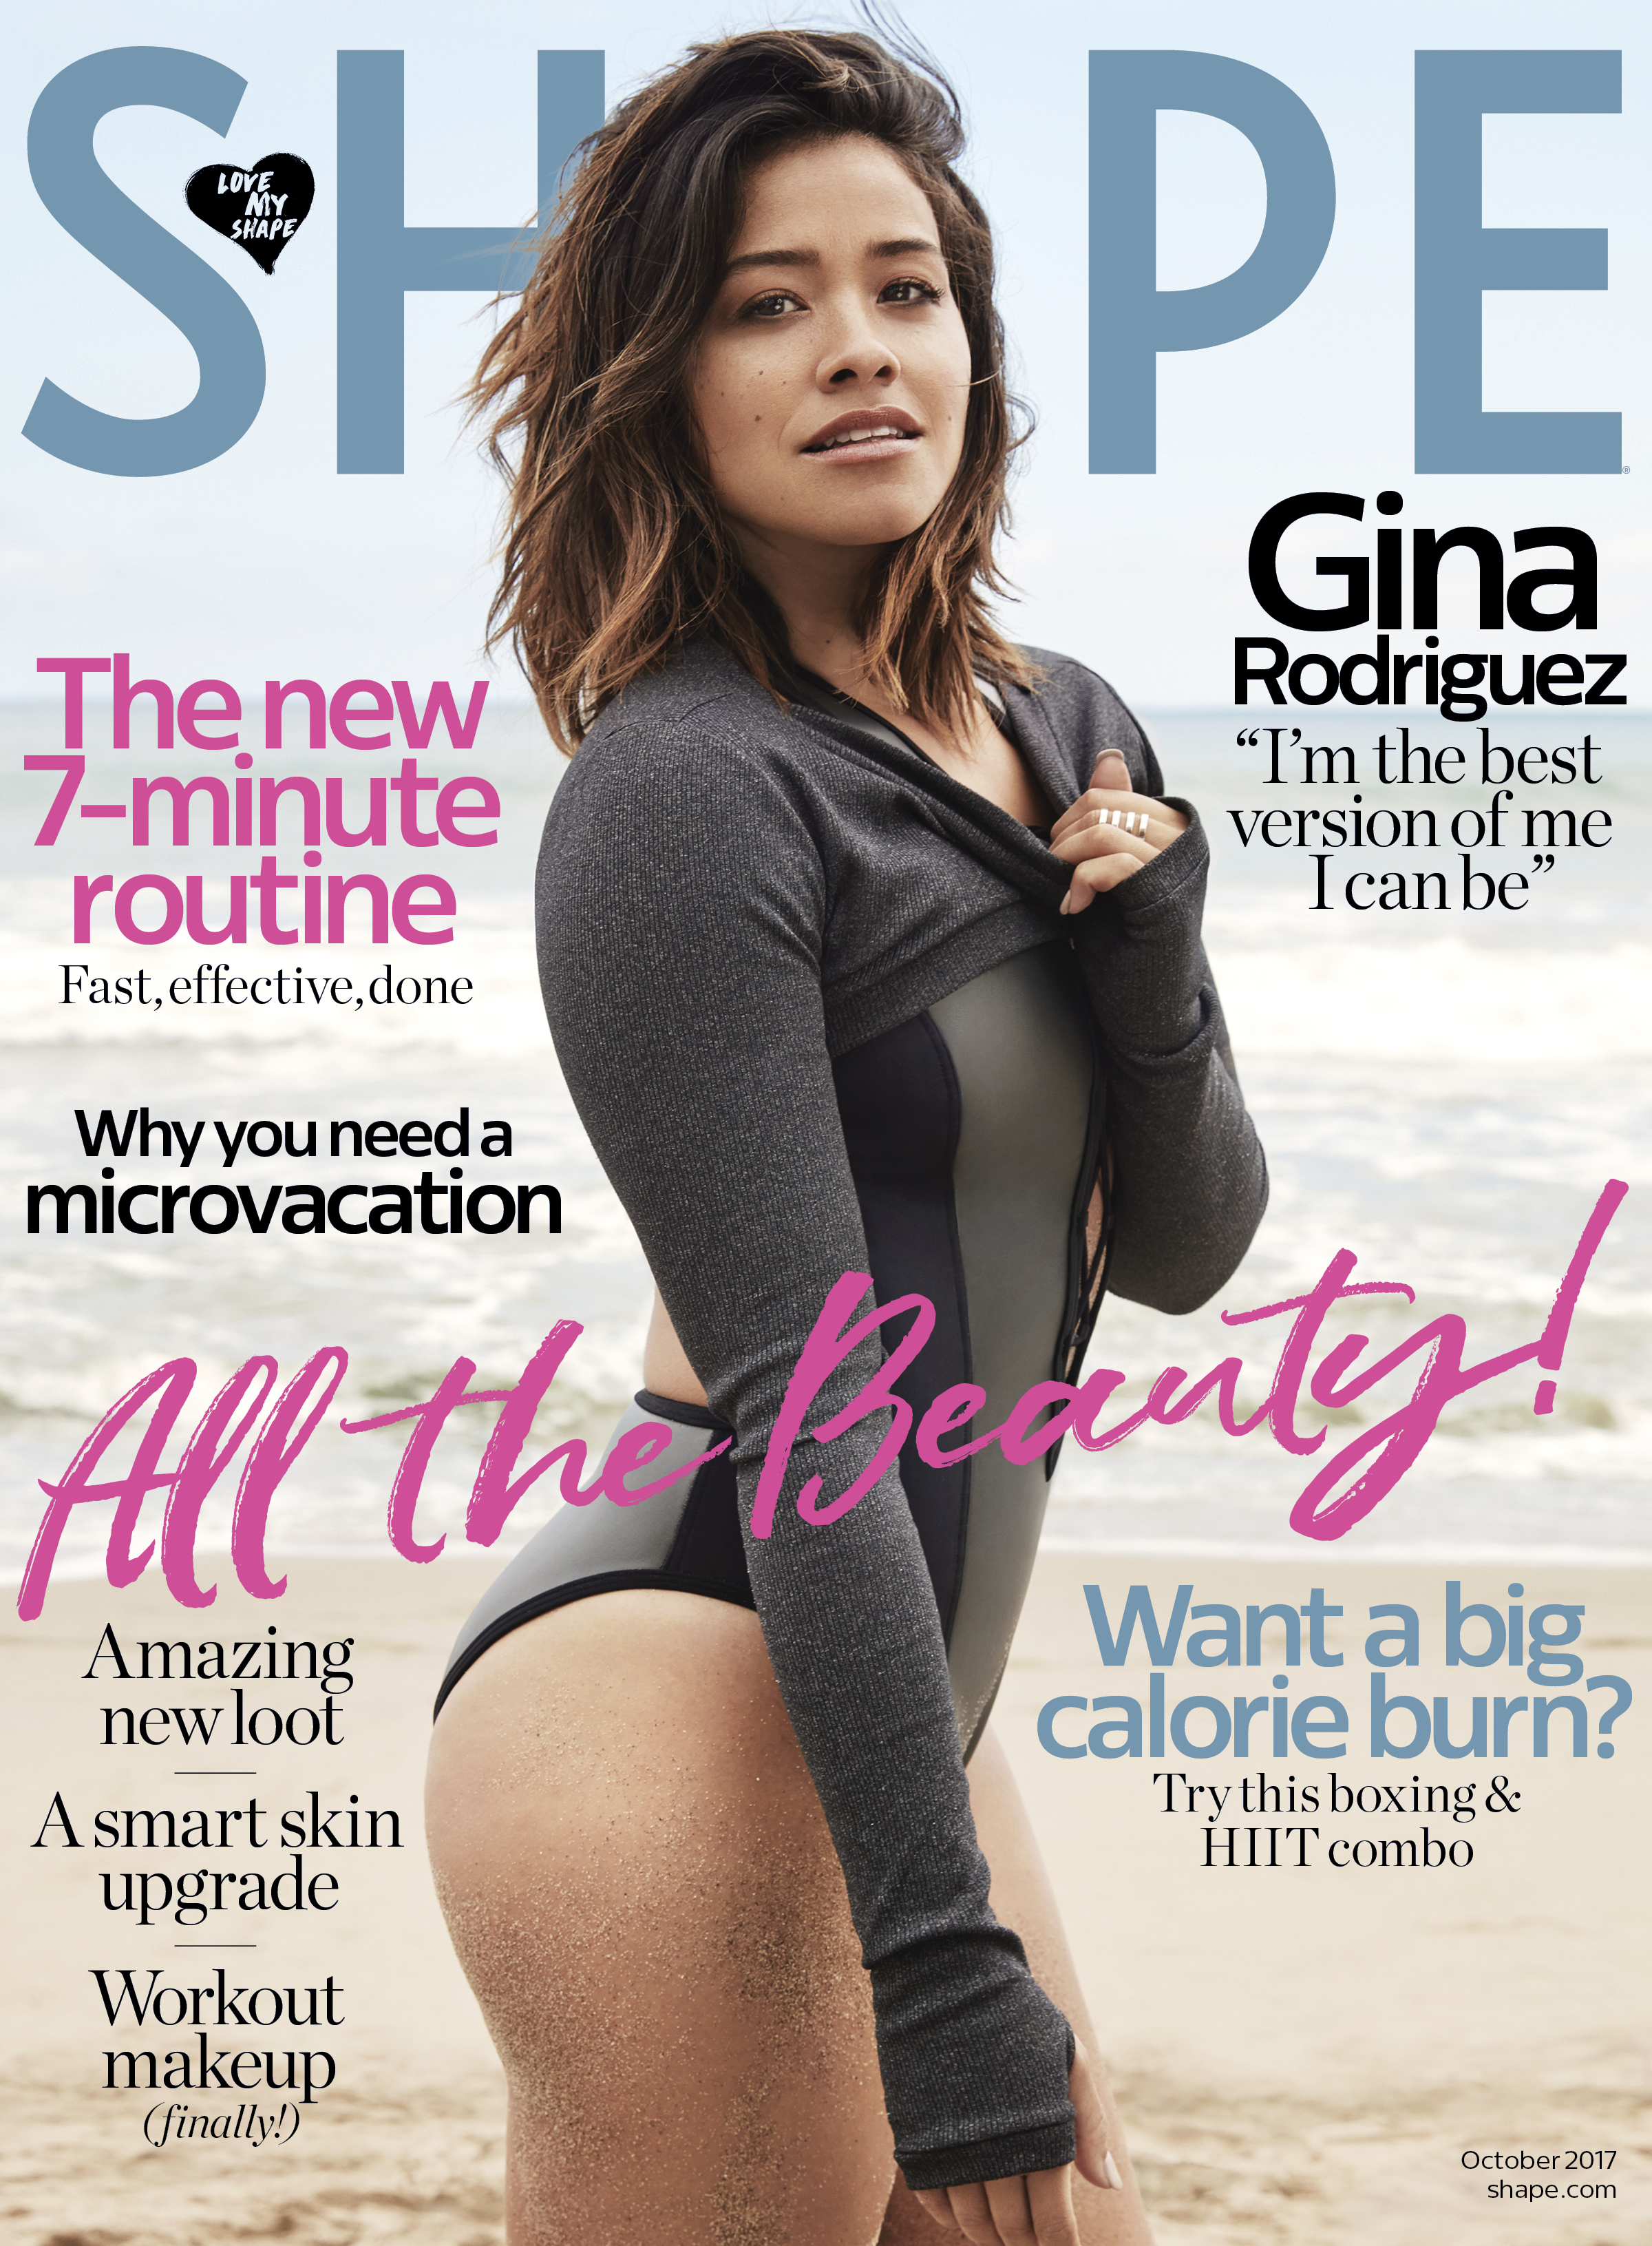 Gina Rodriguez Offers Workout and Healthy Eating Tips In